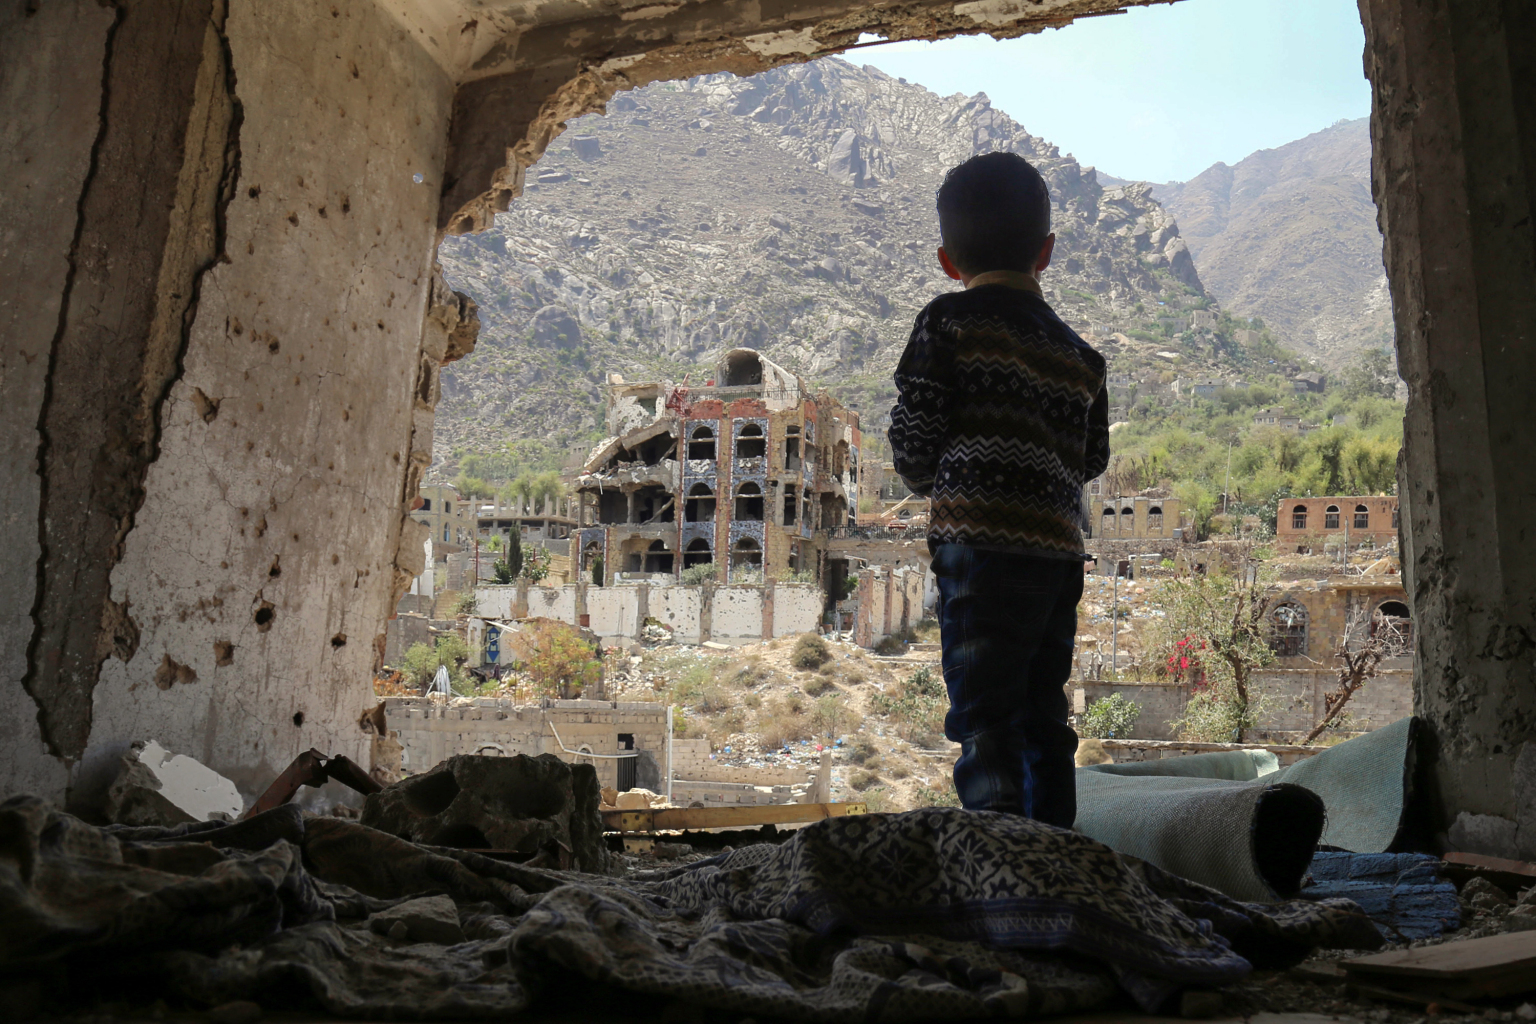 UN ceasefire plan for Yemen could stop the war